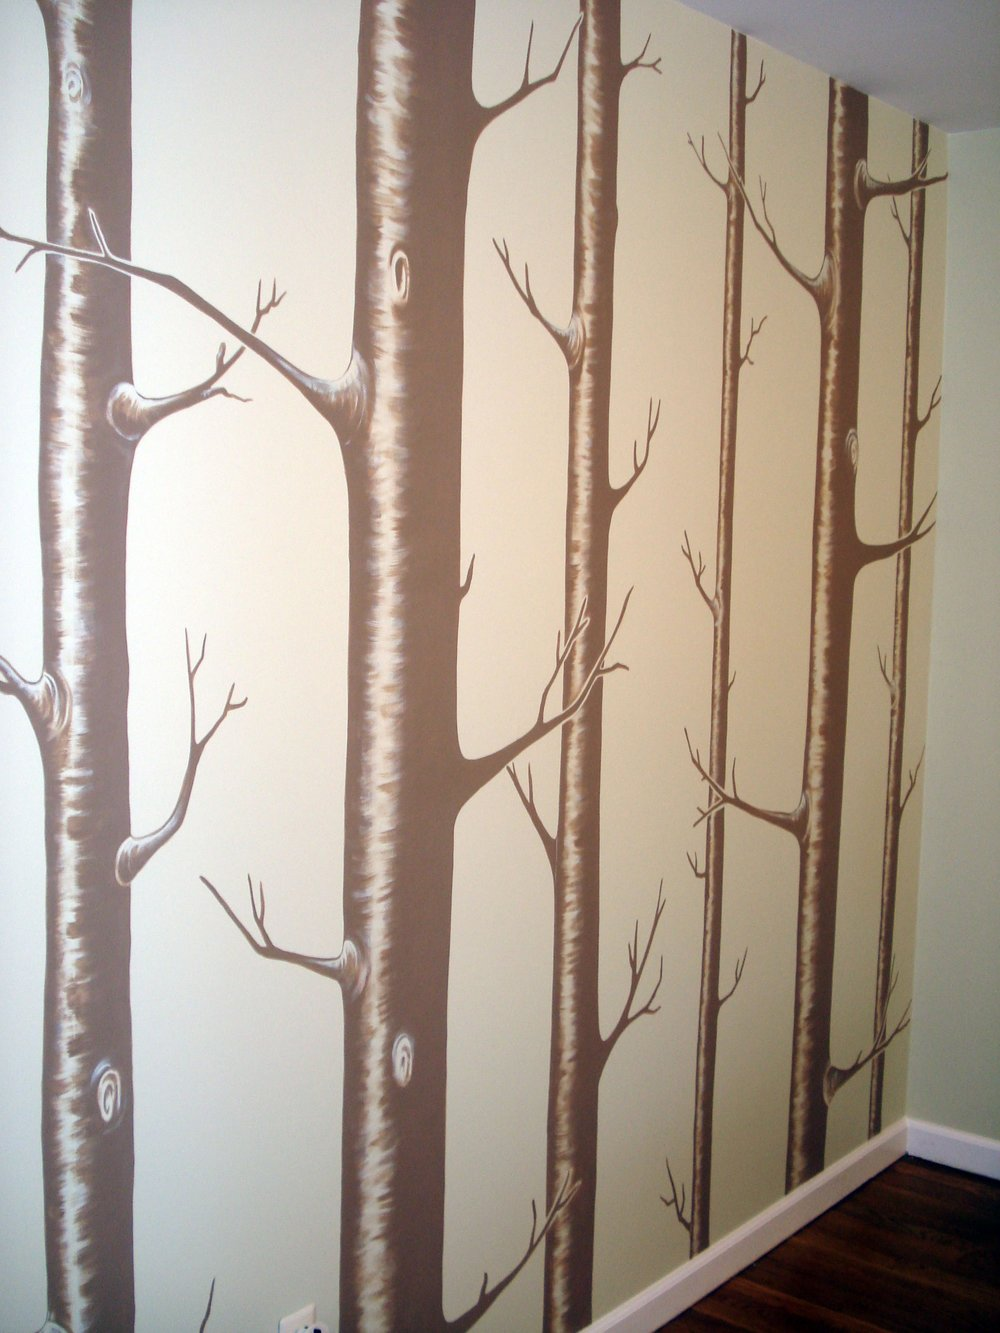 whimsical_2_fullsize.jpg trees bedroom.jpg